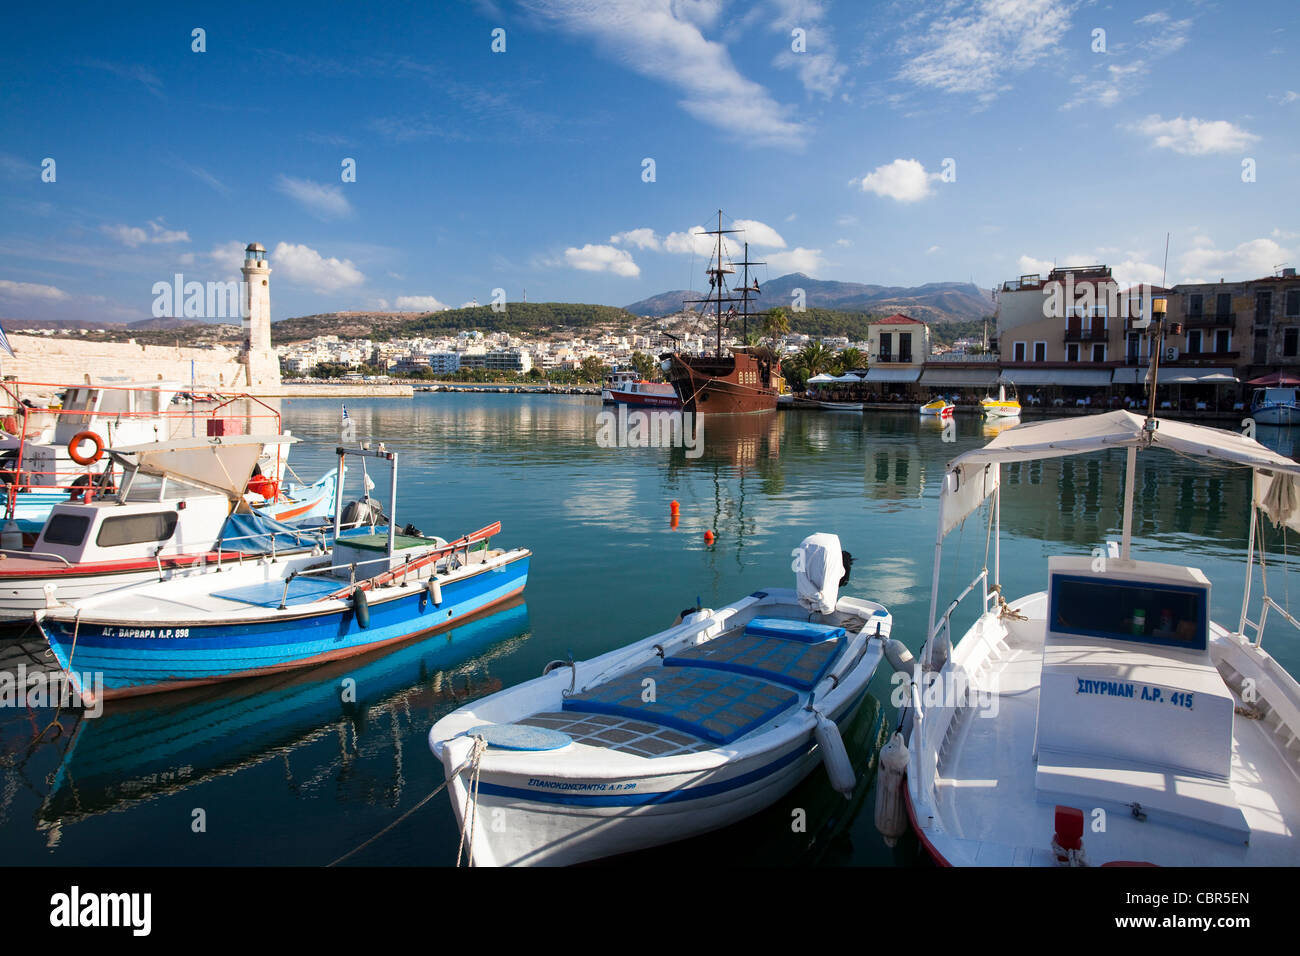 Fishing boats in the Venetian harbour, Rethymnon, Crete, Greece. Stock Photo